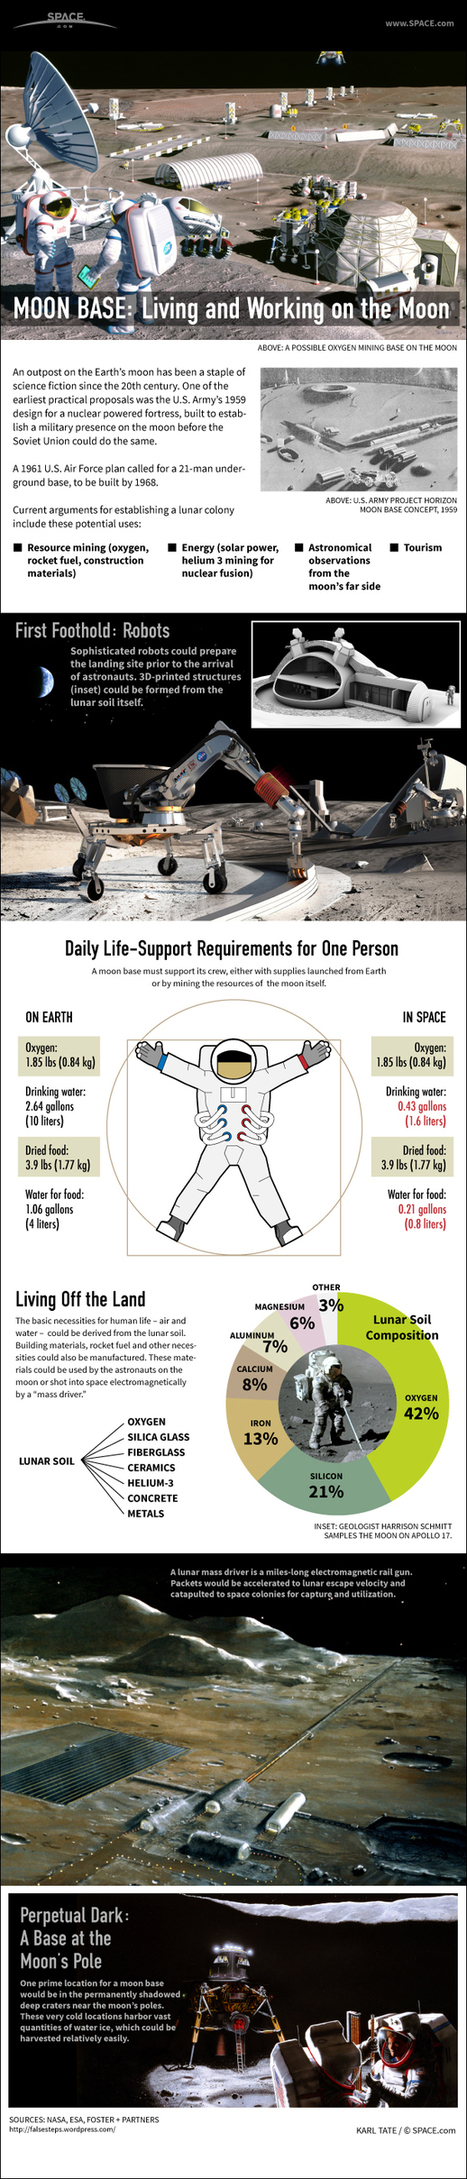 Home On the Moon: How to Build a Lunar Colony (Infographic) | Space matters | Scoop.it